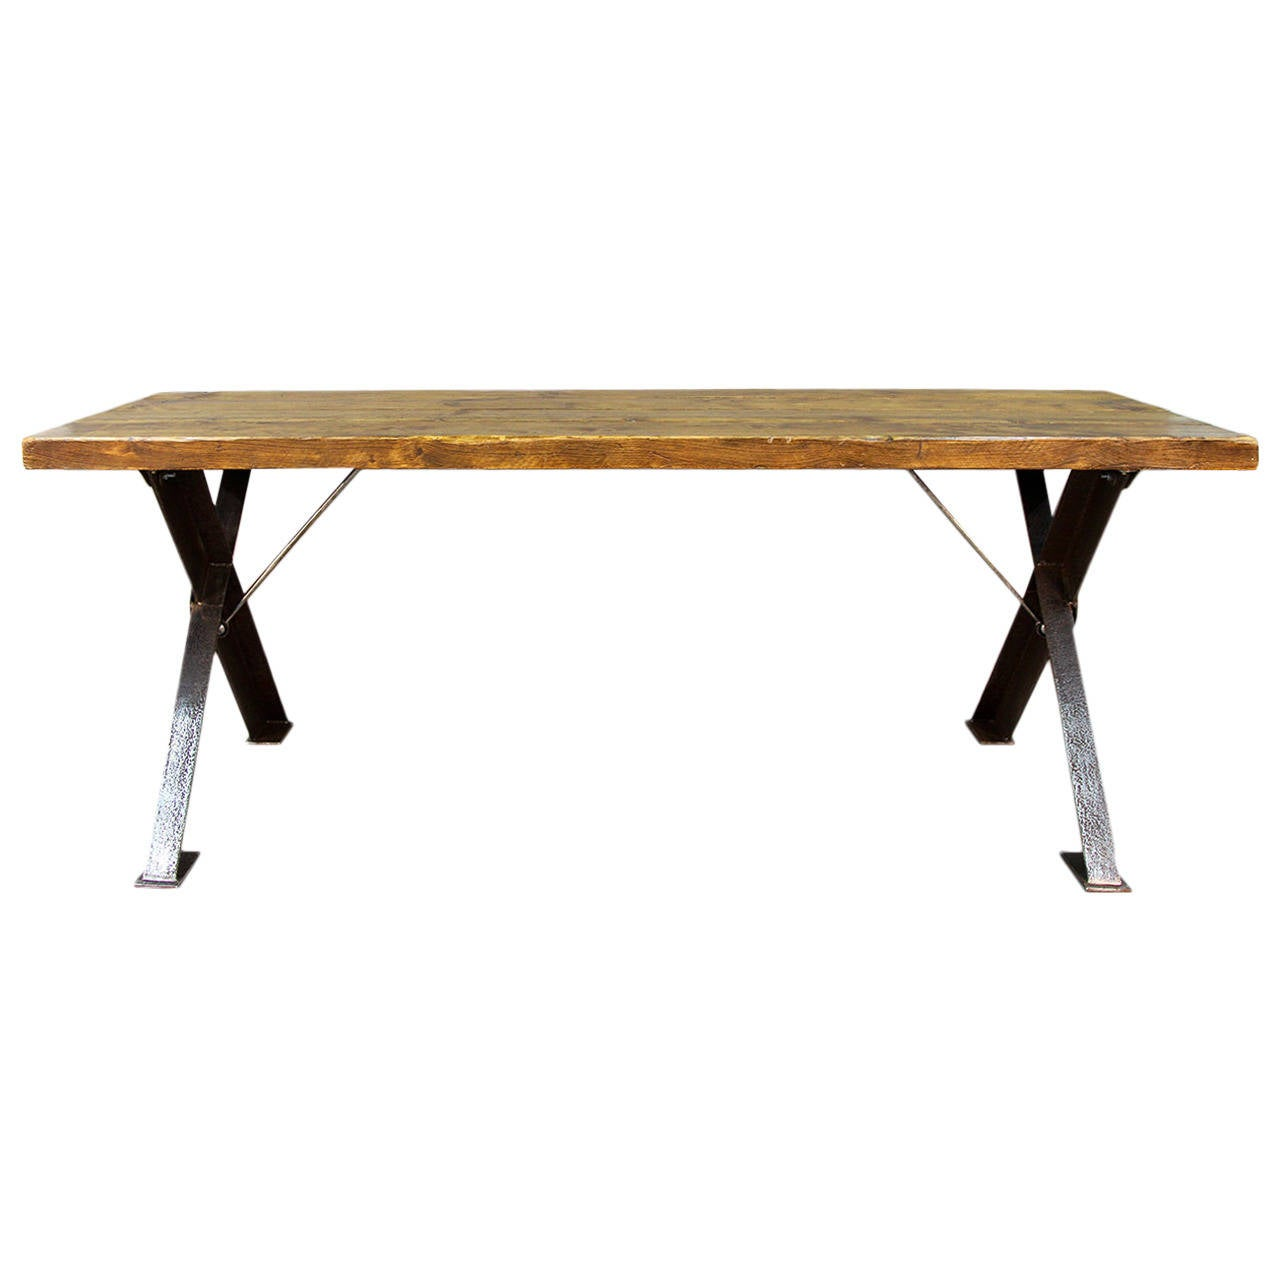 English X-Frame Polished Steel Base Table For Sale